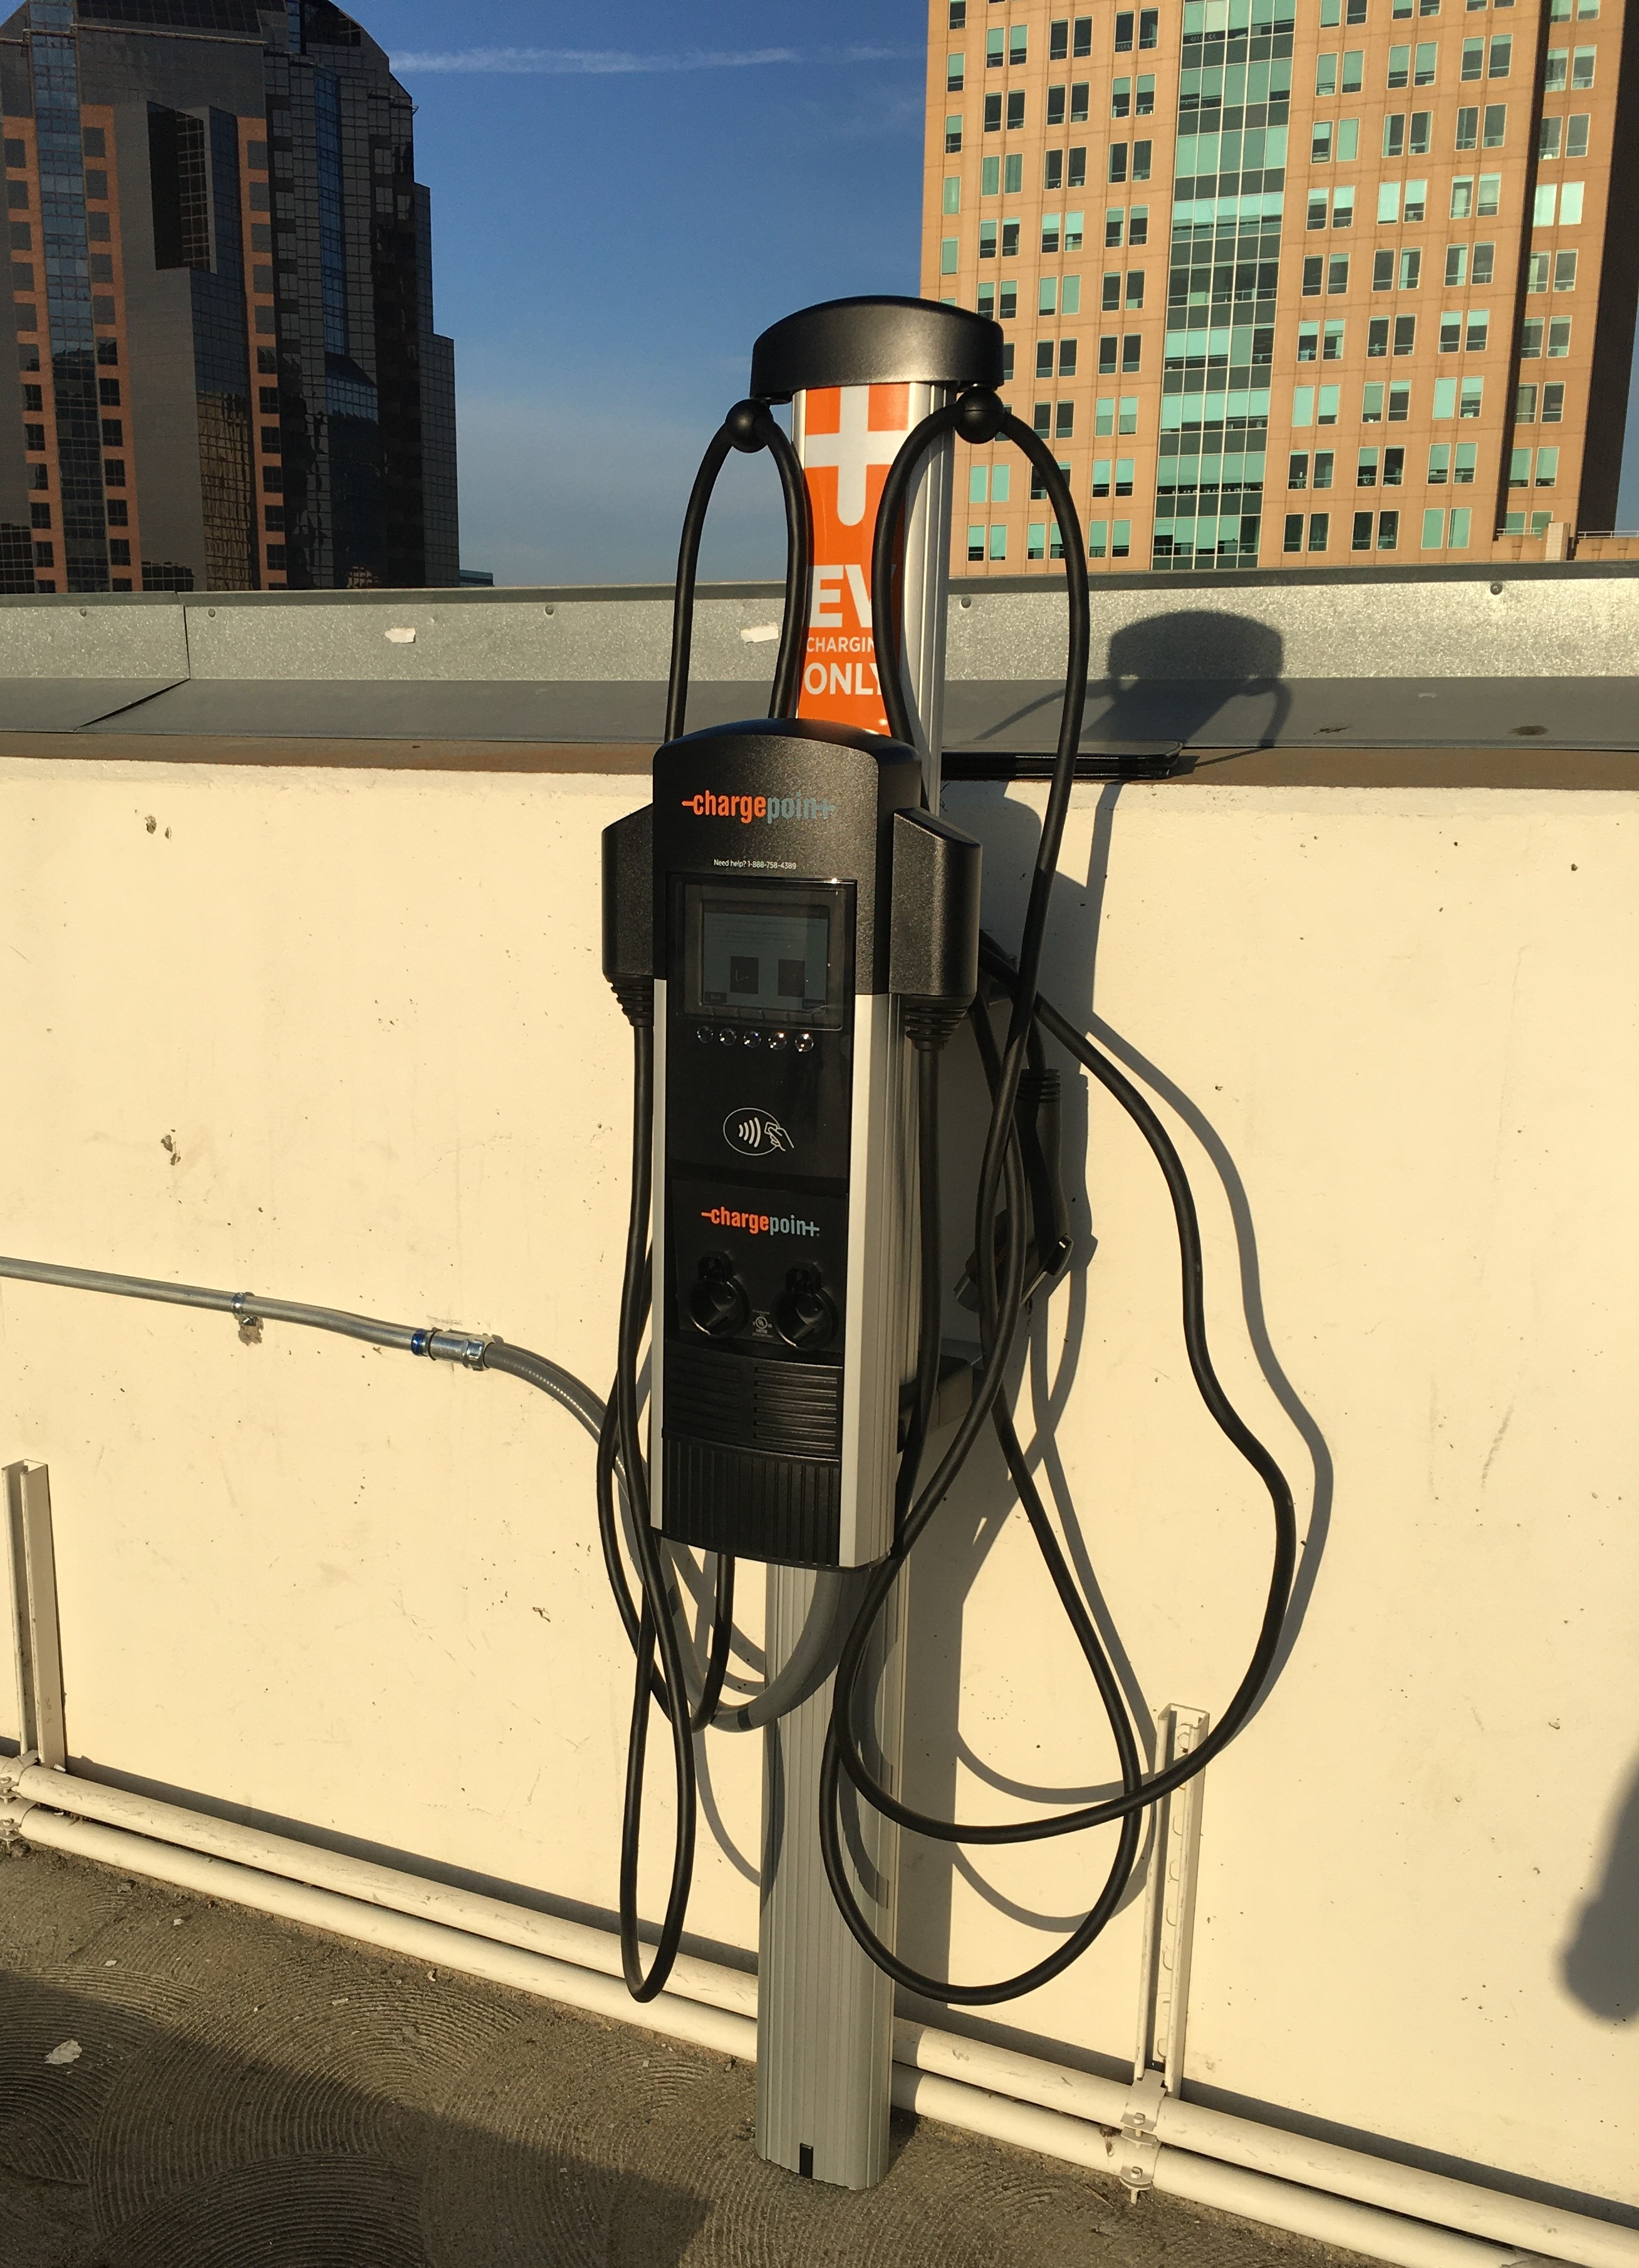 City Hall Garage Rooftop EV Charger